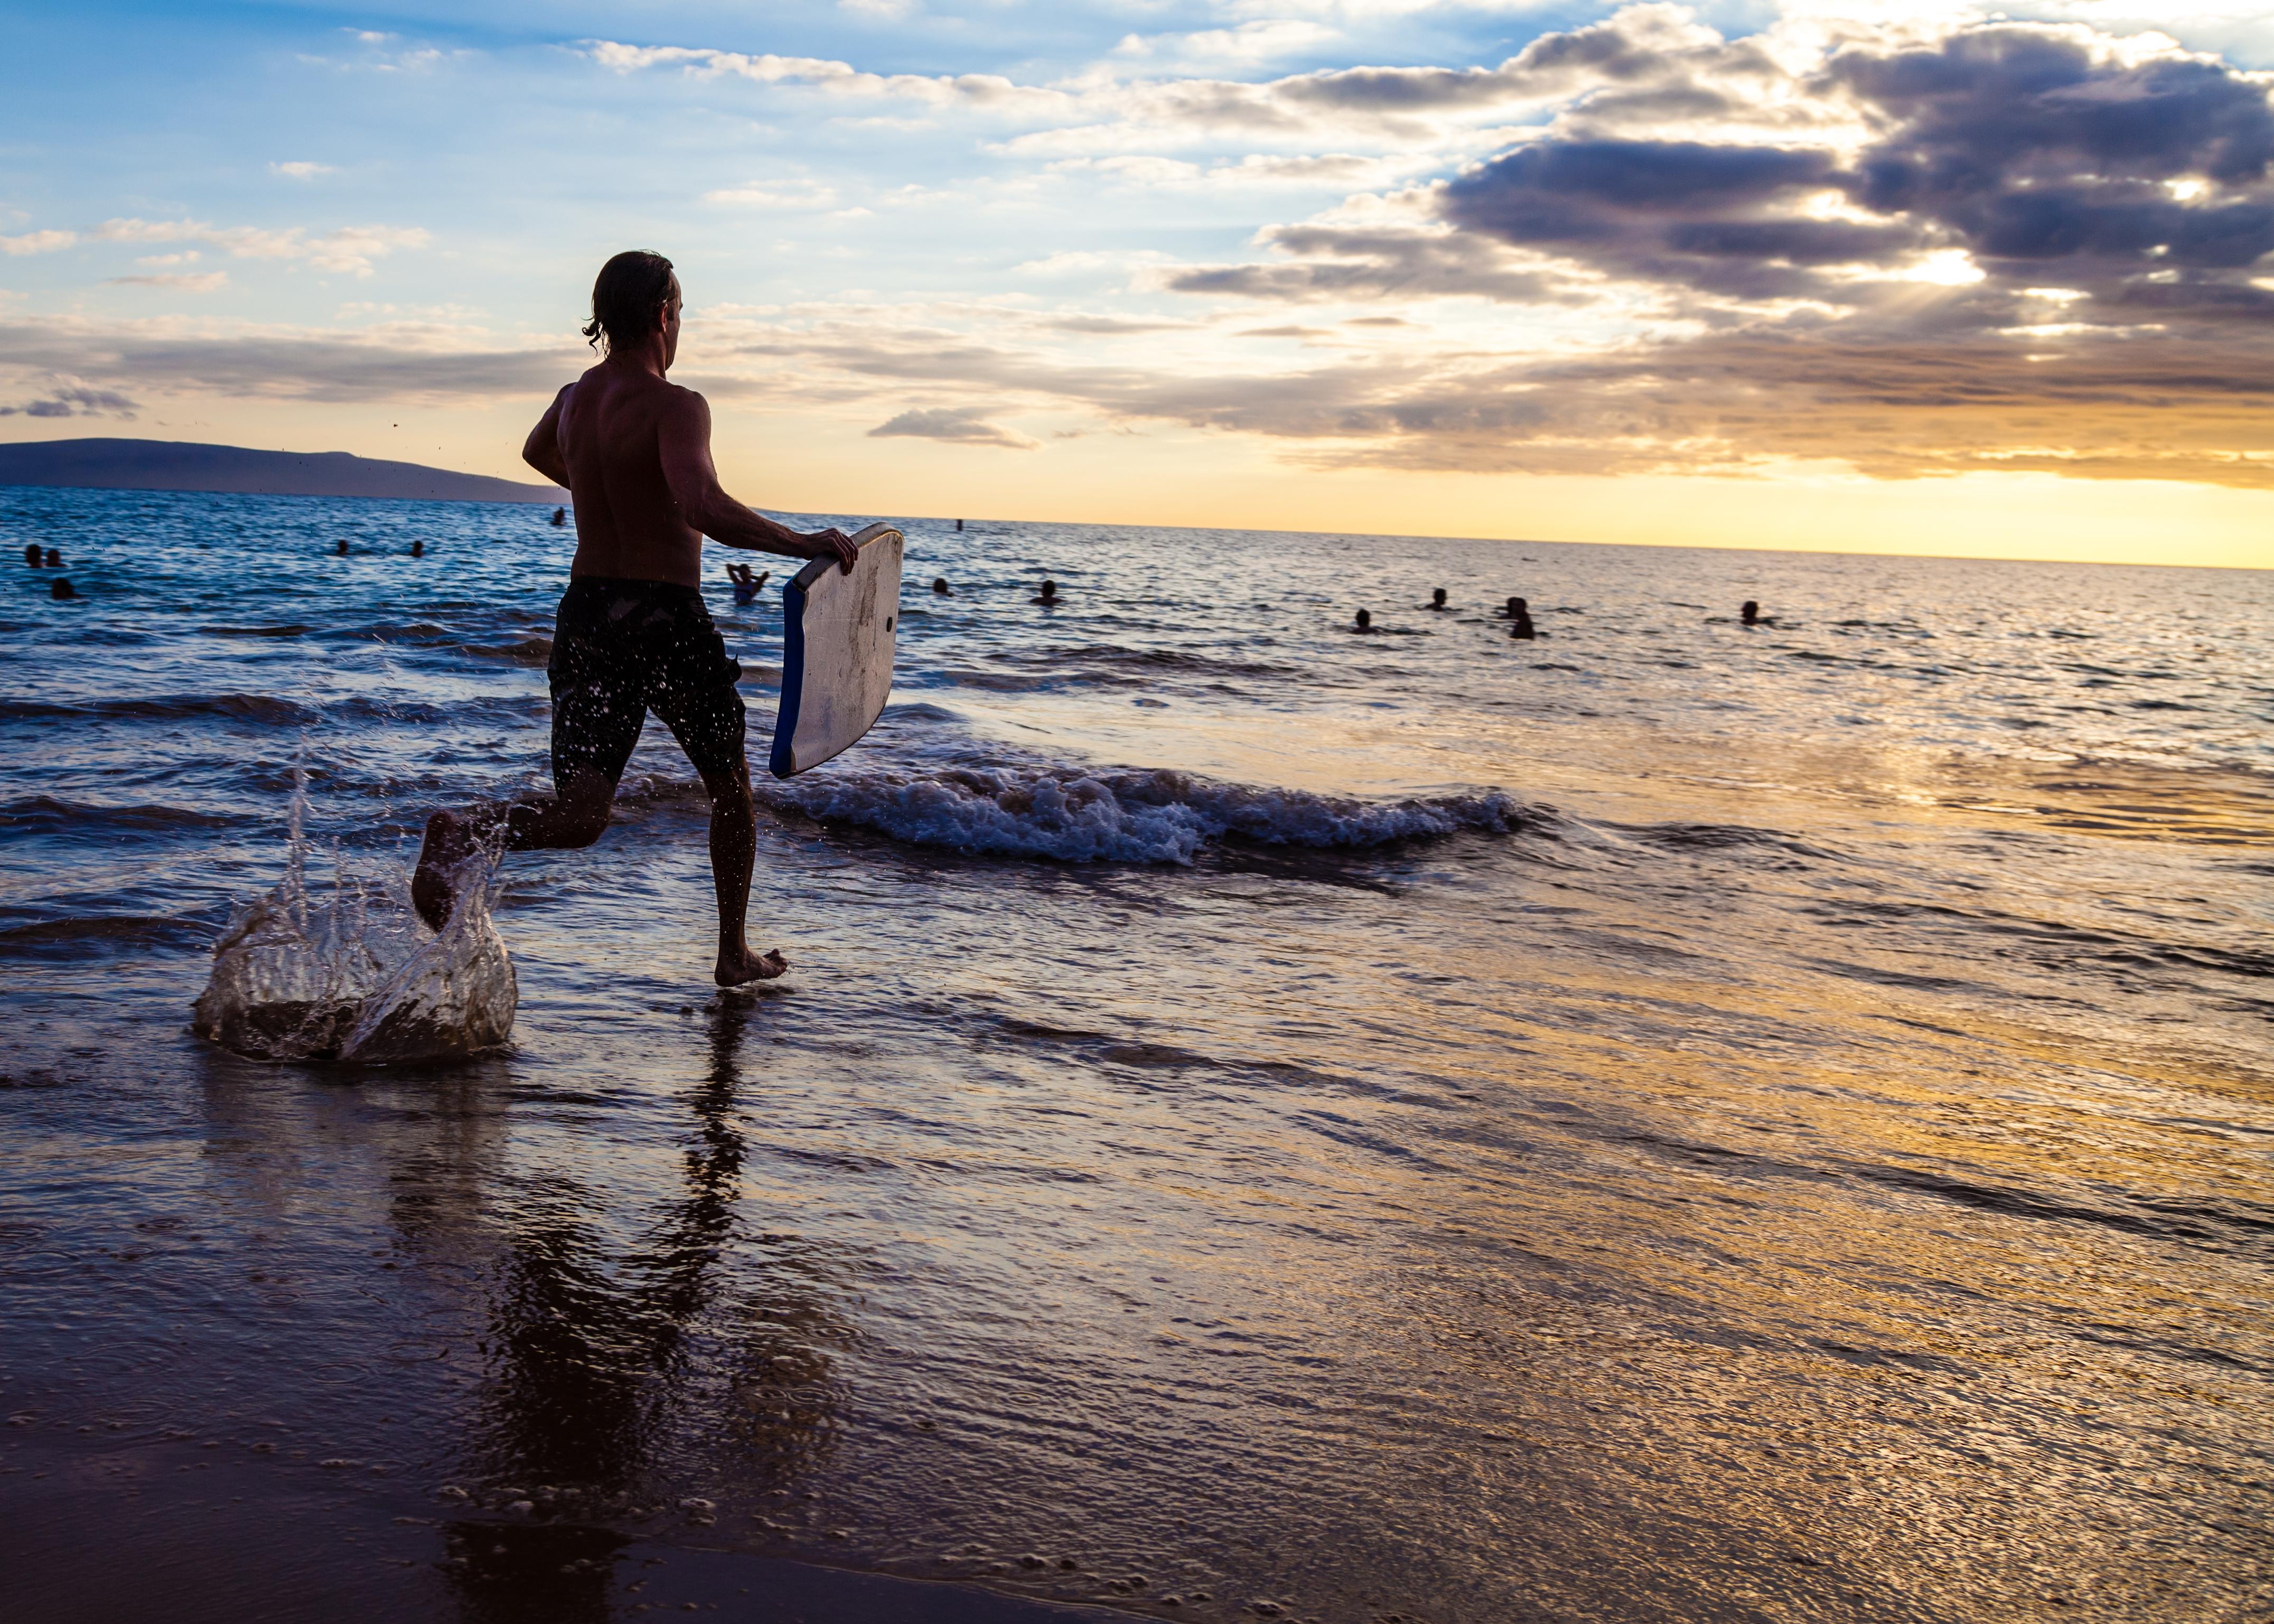 "Maui Kihei Shore<br />Photo <a href=""//creativecommons.org/licences/by-nc-sa/3.0/"" class=""cc-small"" target=""_blank""><img typeof=""foaf:Image"" class=""image-style-none"" src=""//i.creativecommons.org/l/by-nc-sa/3.0/80x15.png"" width=""80px"" height=""15px"" alt=""Creative Commons Licence"" /></a> <a href=""http://www.flickr.com/photos/83261600@N00/8166676156"">The Q</a>"